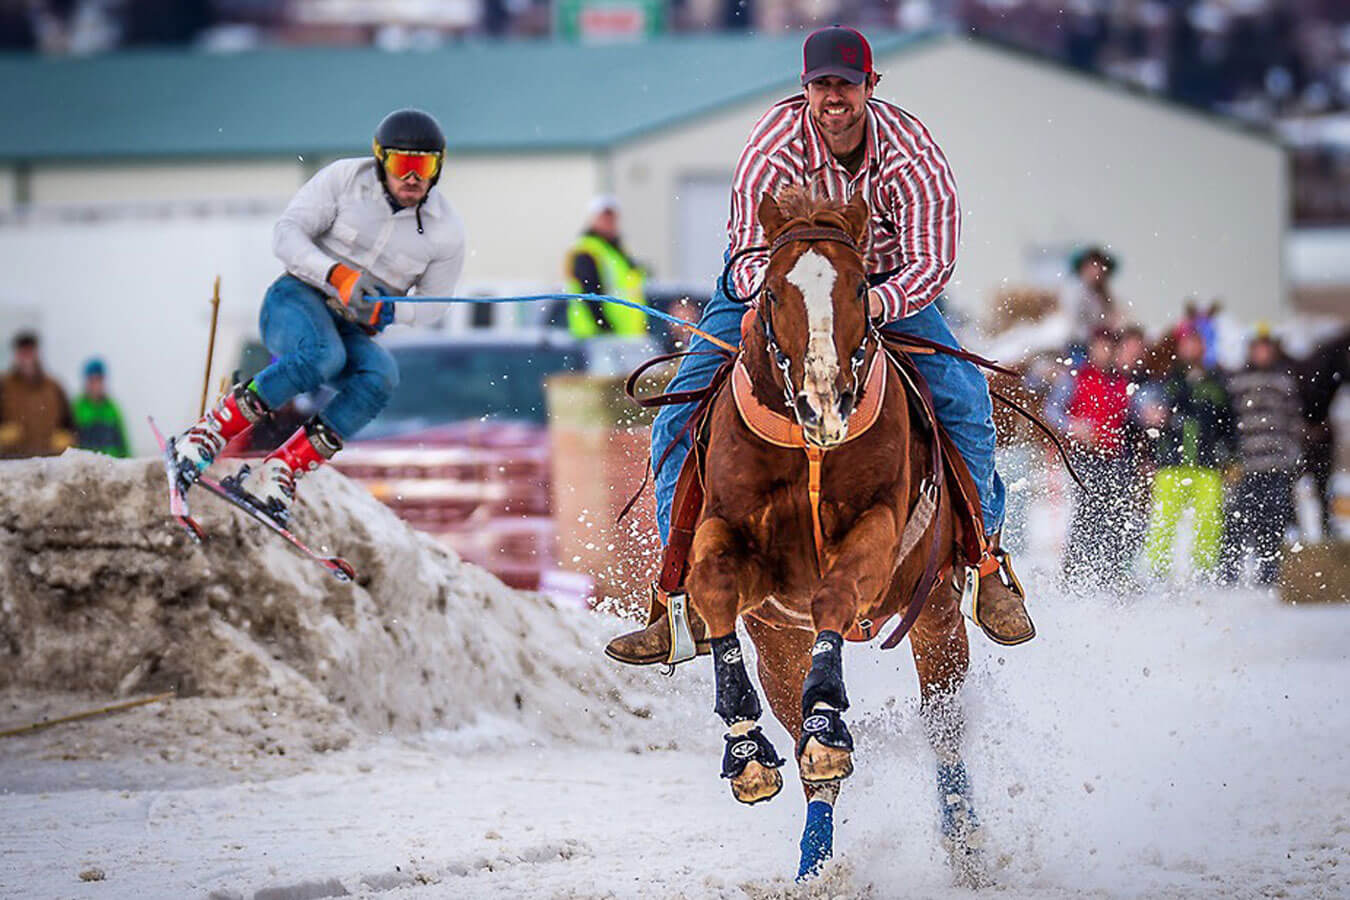 Experience the excitement of Skijoring in Pagosa Springs